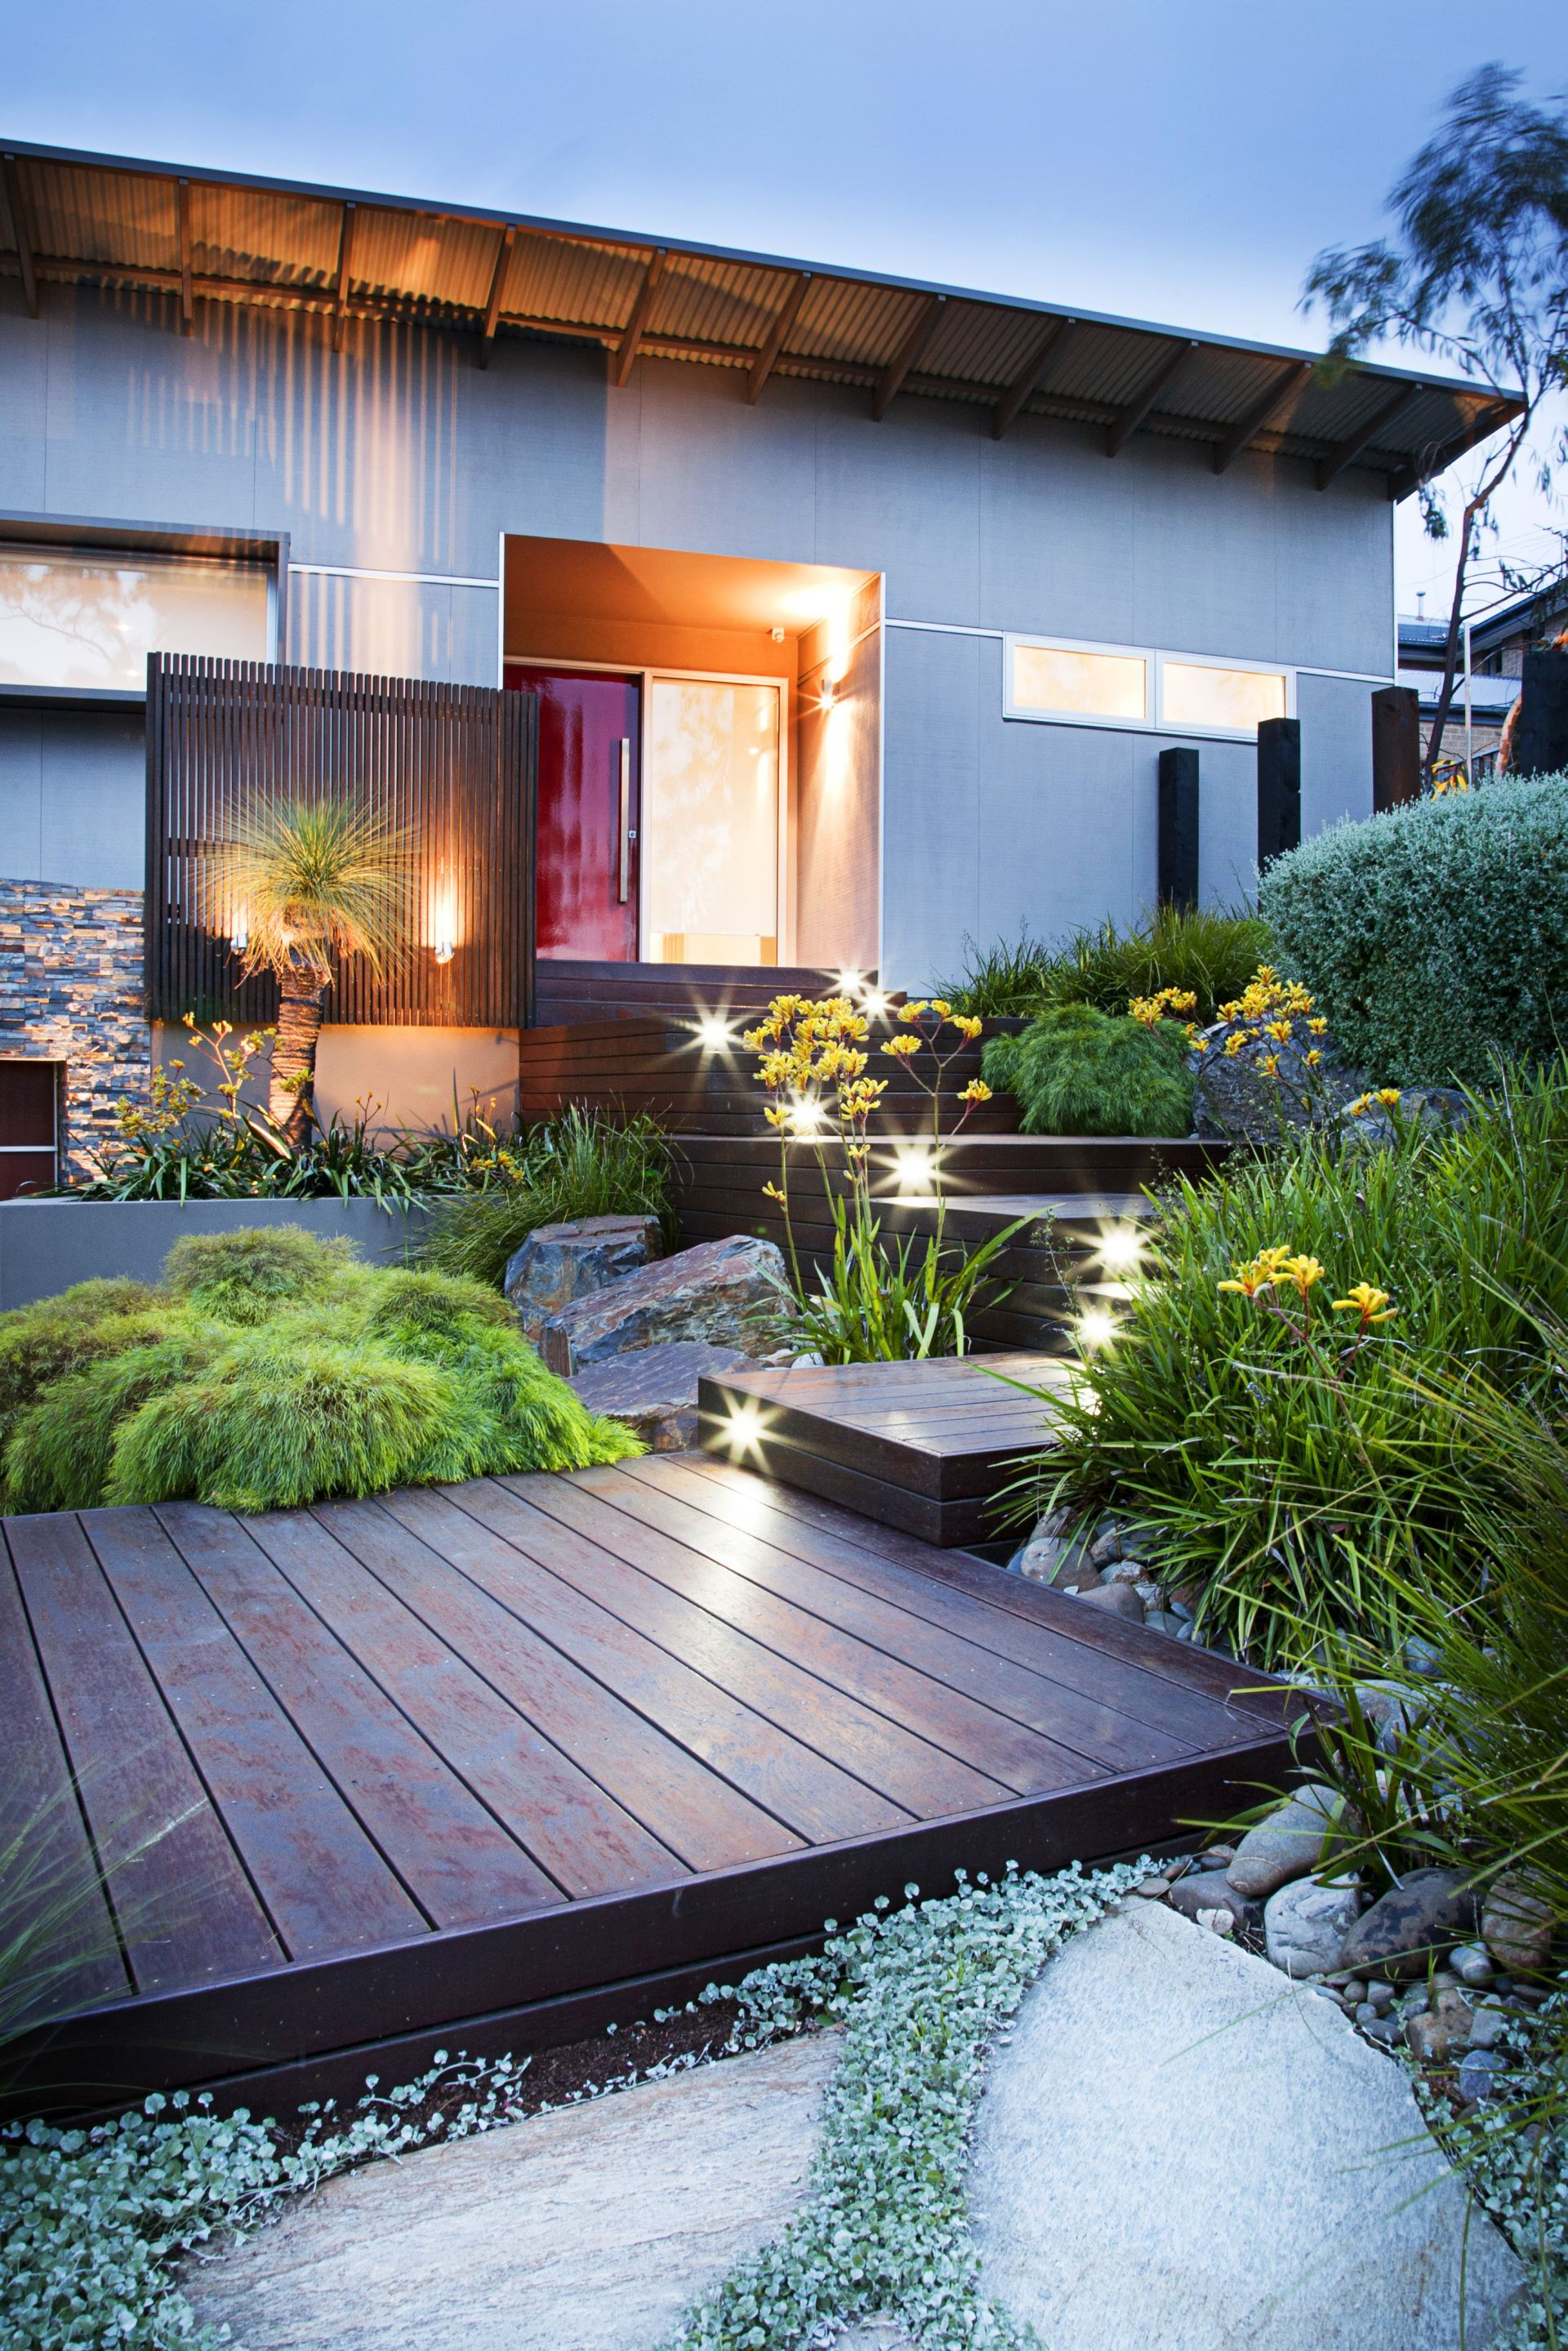 35 Modern Front Yard Landscaping Ideas With Urban Style: Timber Deck Platforms Up To The Contemporary Architecture By TLC Pools & Landscape